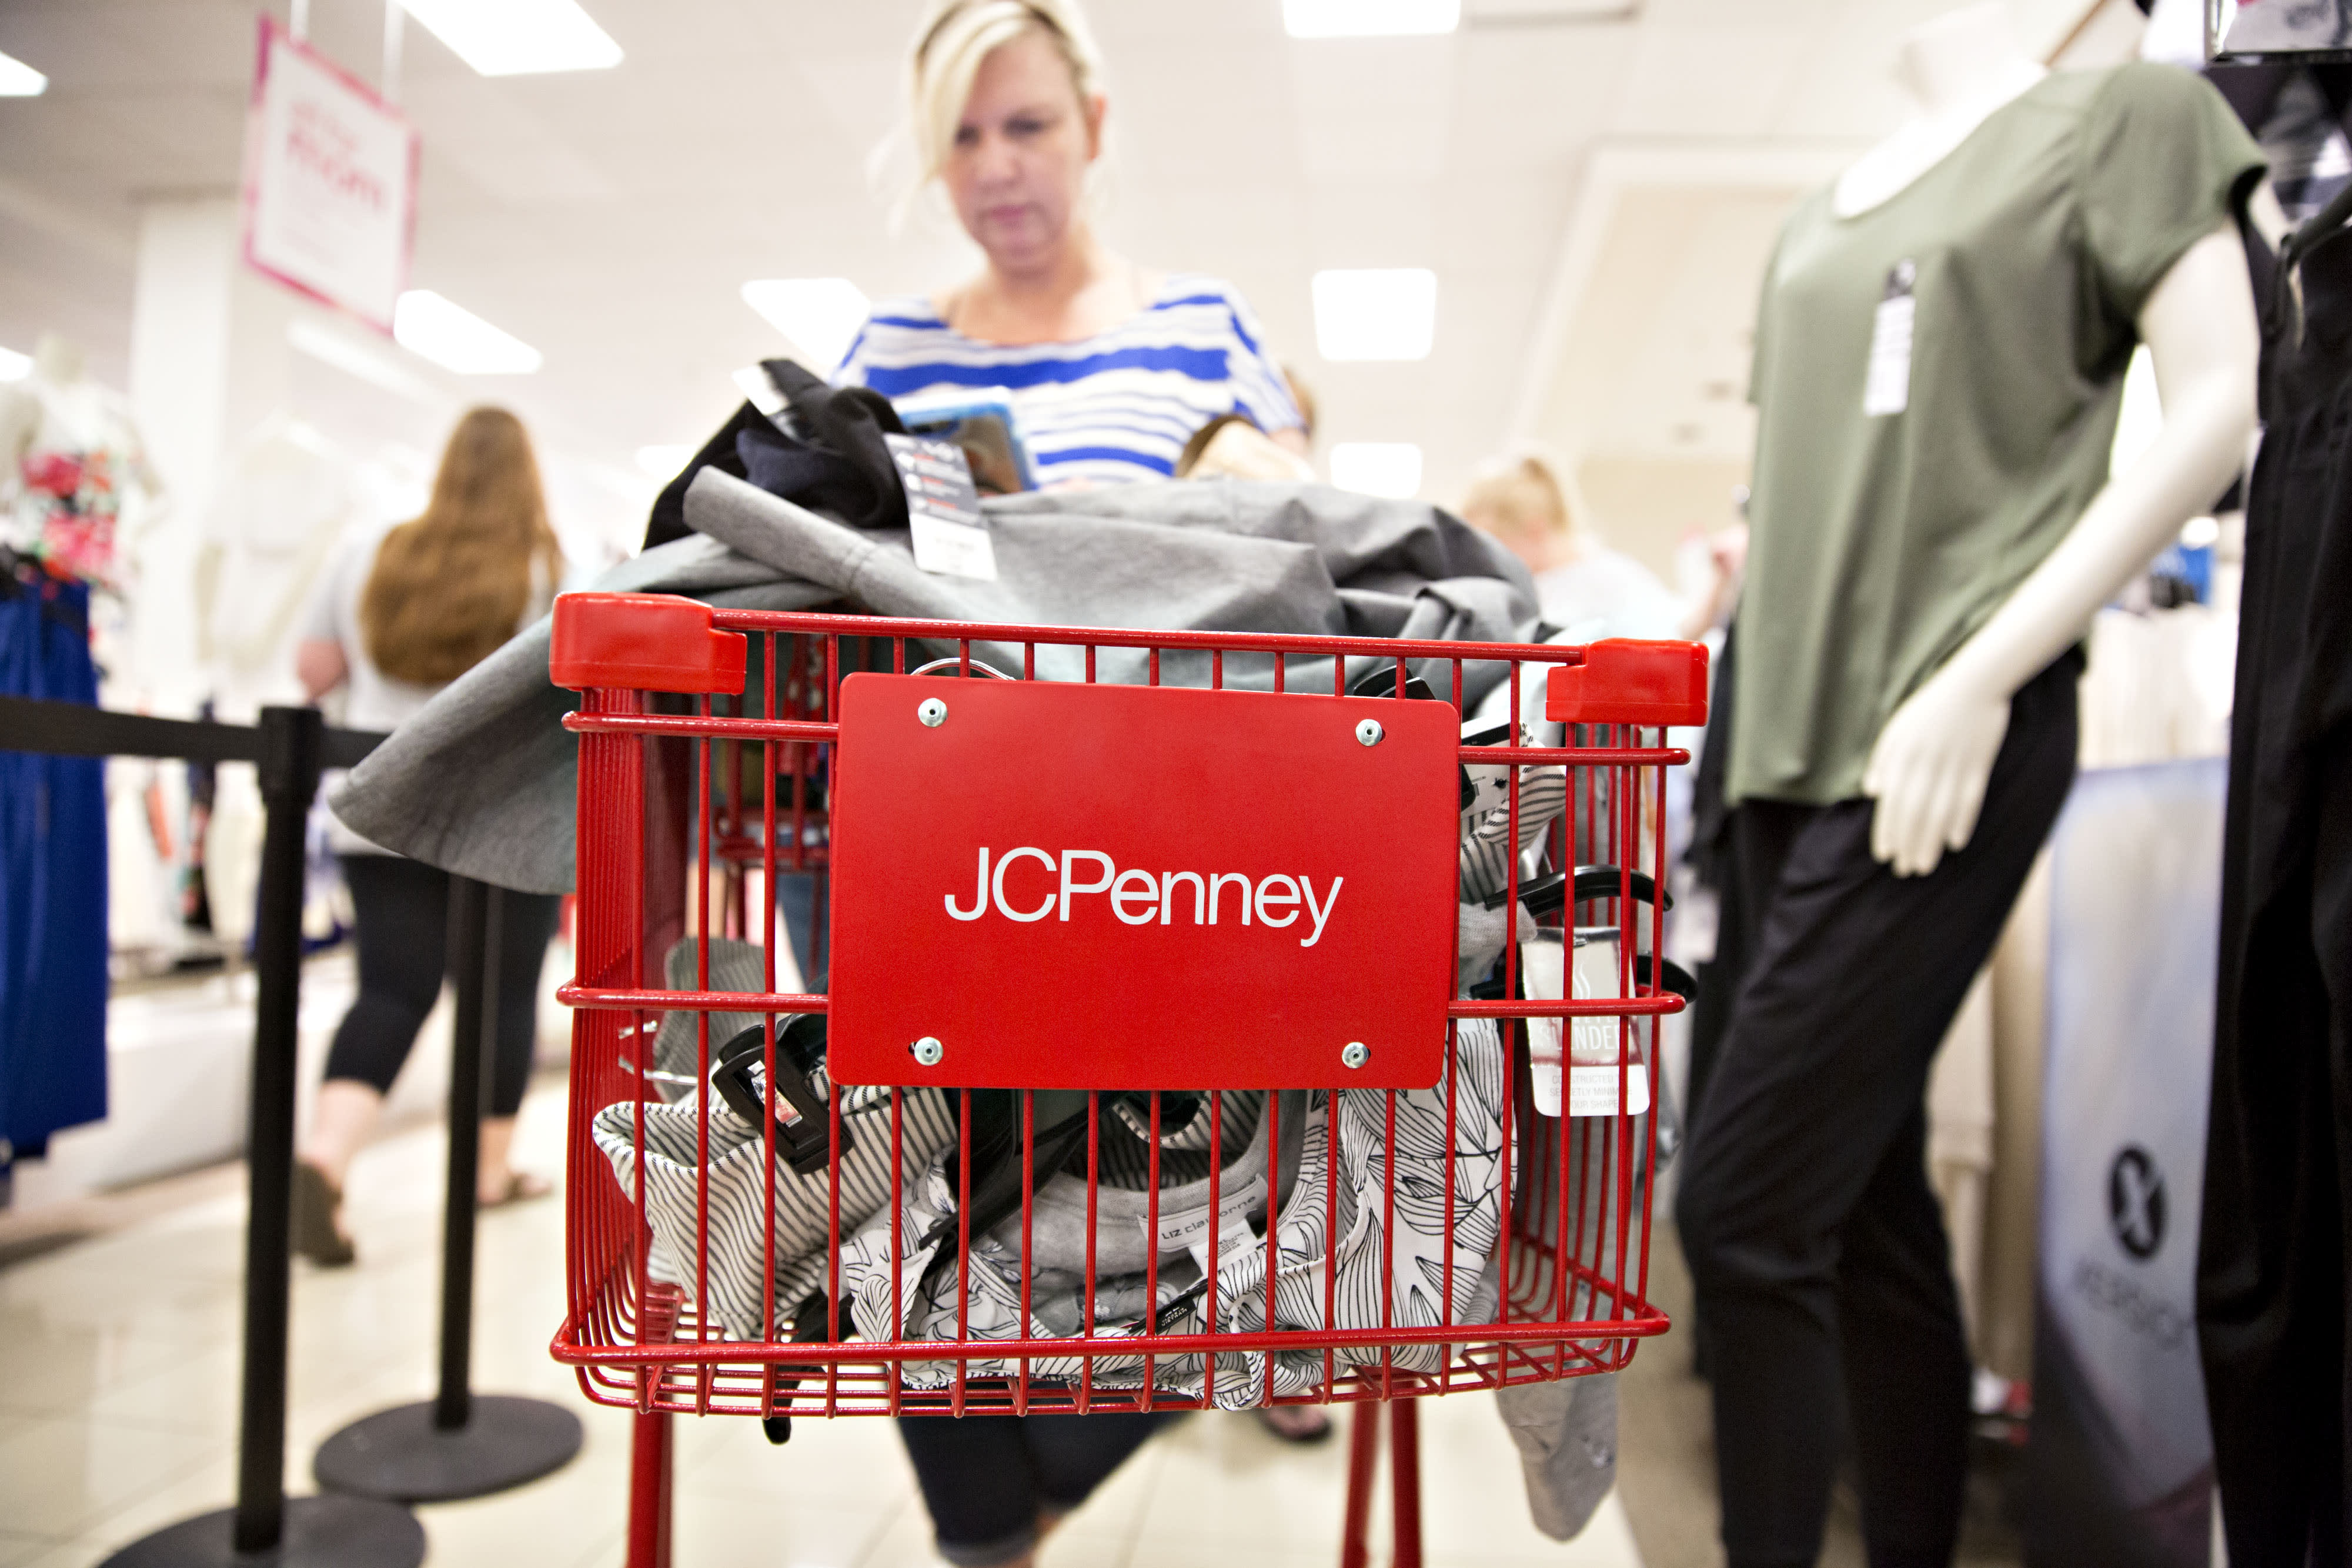 Stocks making the biggest moves midday: Kohl's, Micron, JC Penney & more